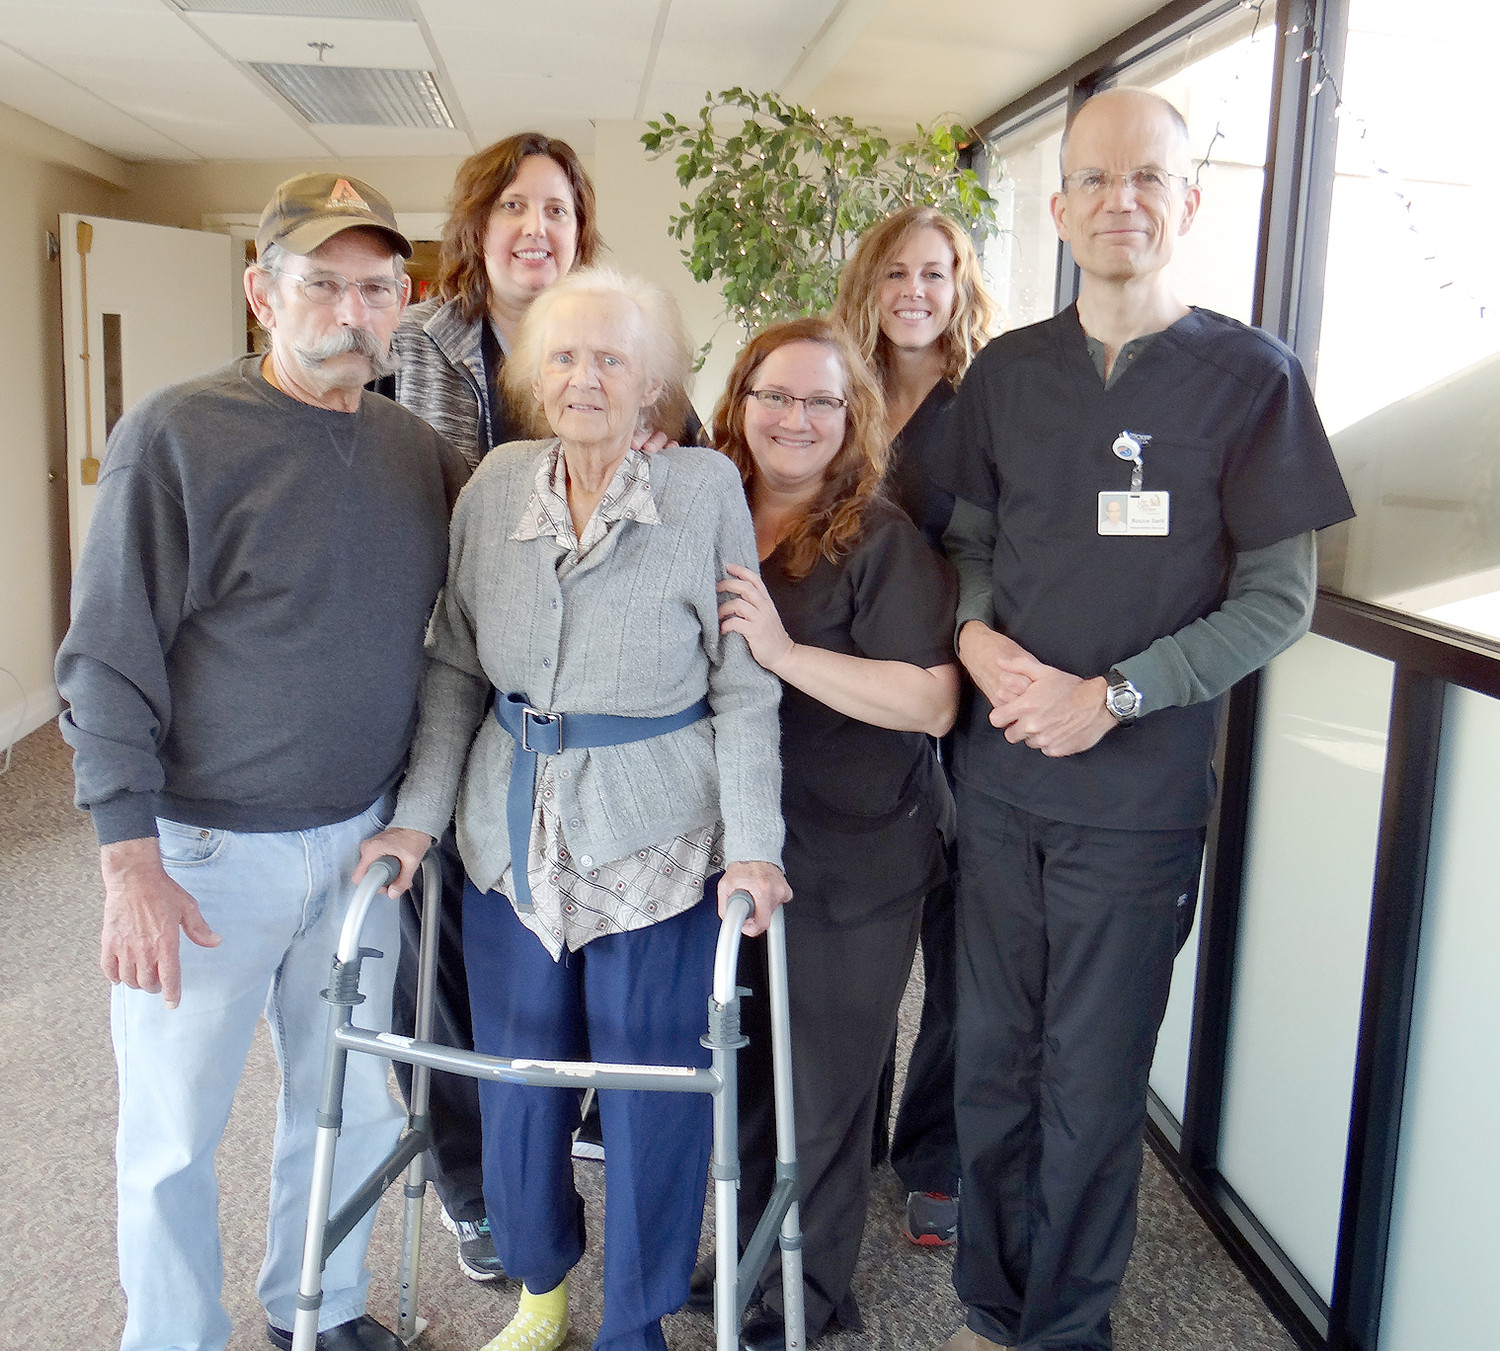 FROM LEFT are William Whittington; Tara Coe, occupational therapist at Life Care Center of Cleveland; Doris Williams; Kelly Newbould, physical therapist assistant; Brittney Furgerson, speech therapist; and Rocco Sarli, physical therapist